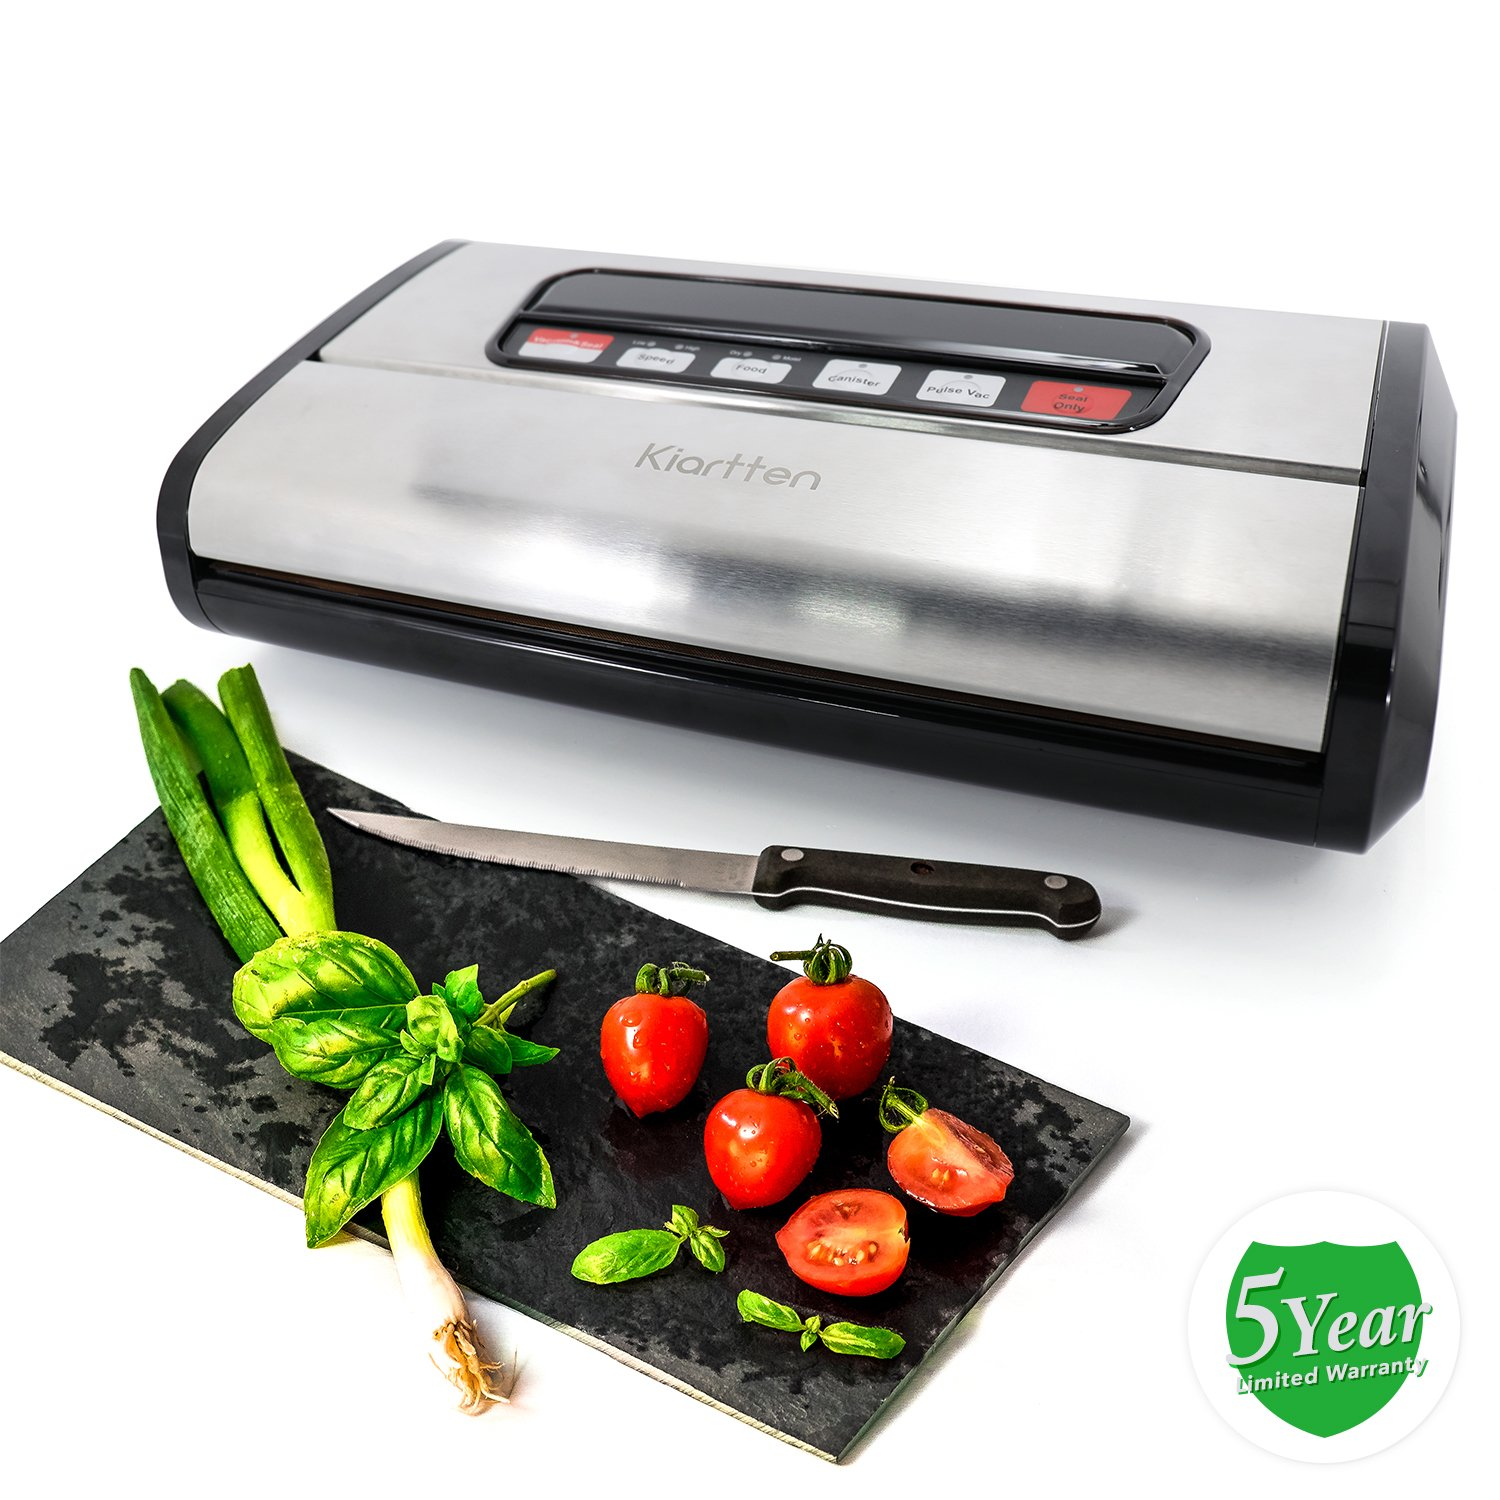 Kiartten Vacuum Sealer, A Fresh Food Locker for Your Kitchen. Keeps Food Fresh Up To 5X Longer. (Stainless Steel) by Spreaze (Image #6)